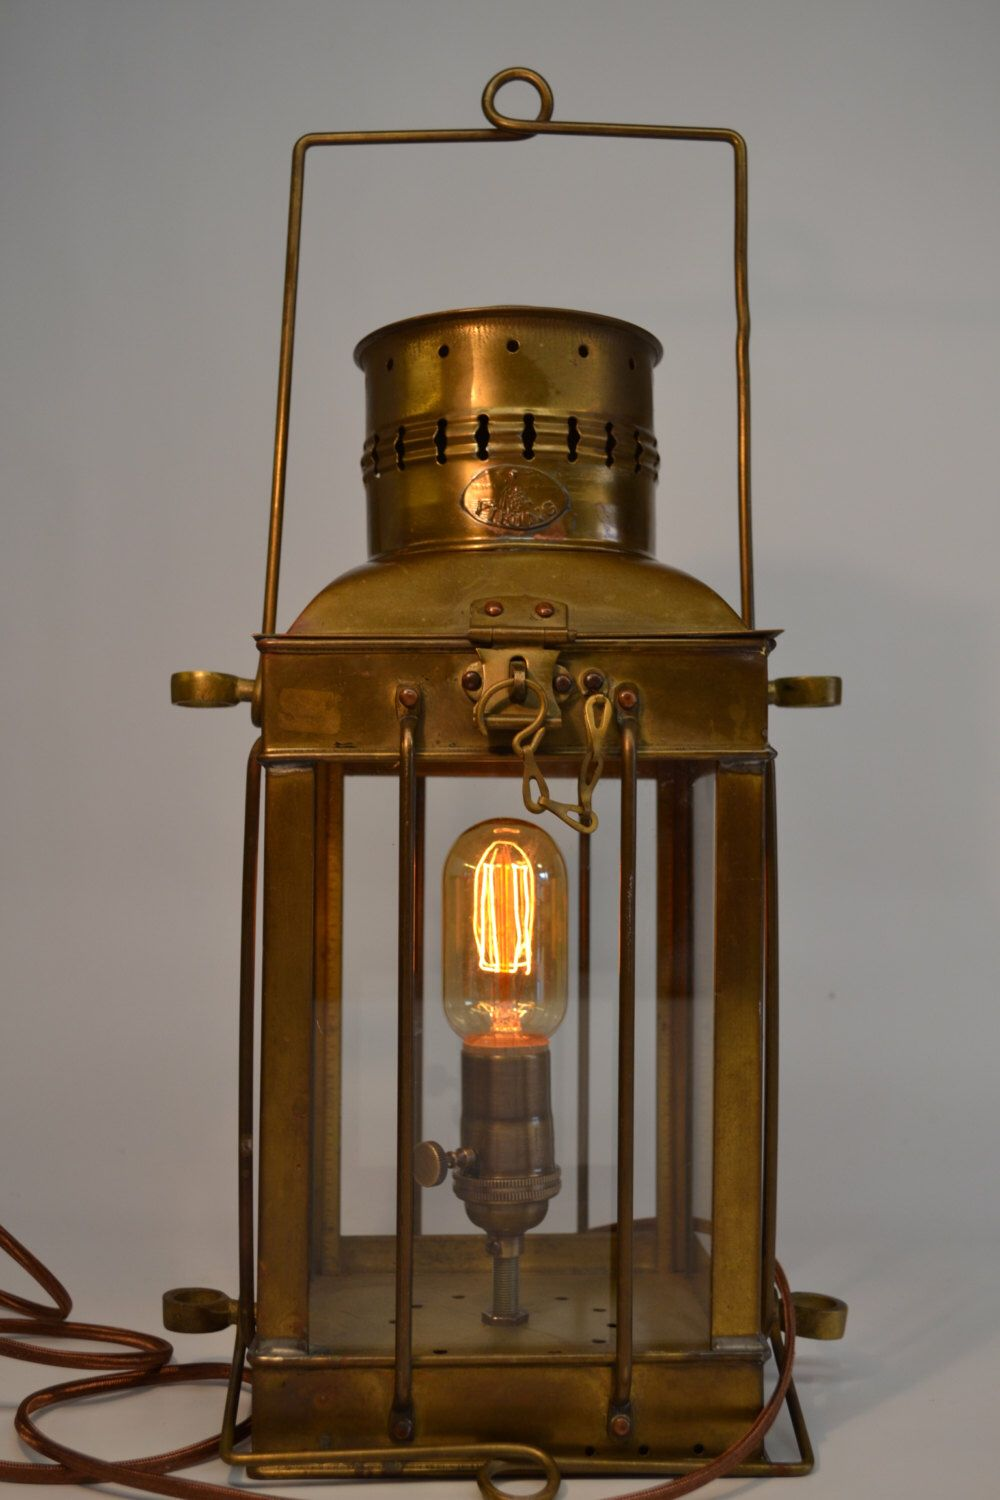 Brass Kerosene Lamp Lantern Working Condition Antique Decorative Vintage Lamp